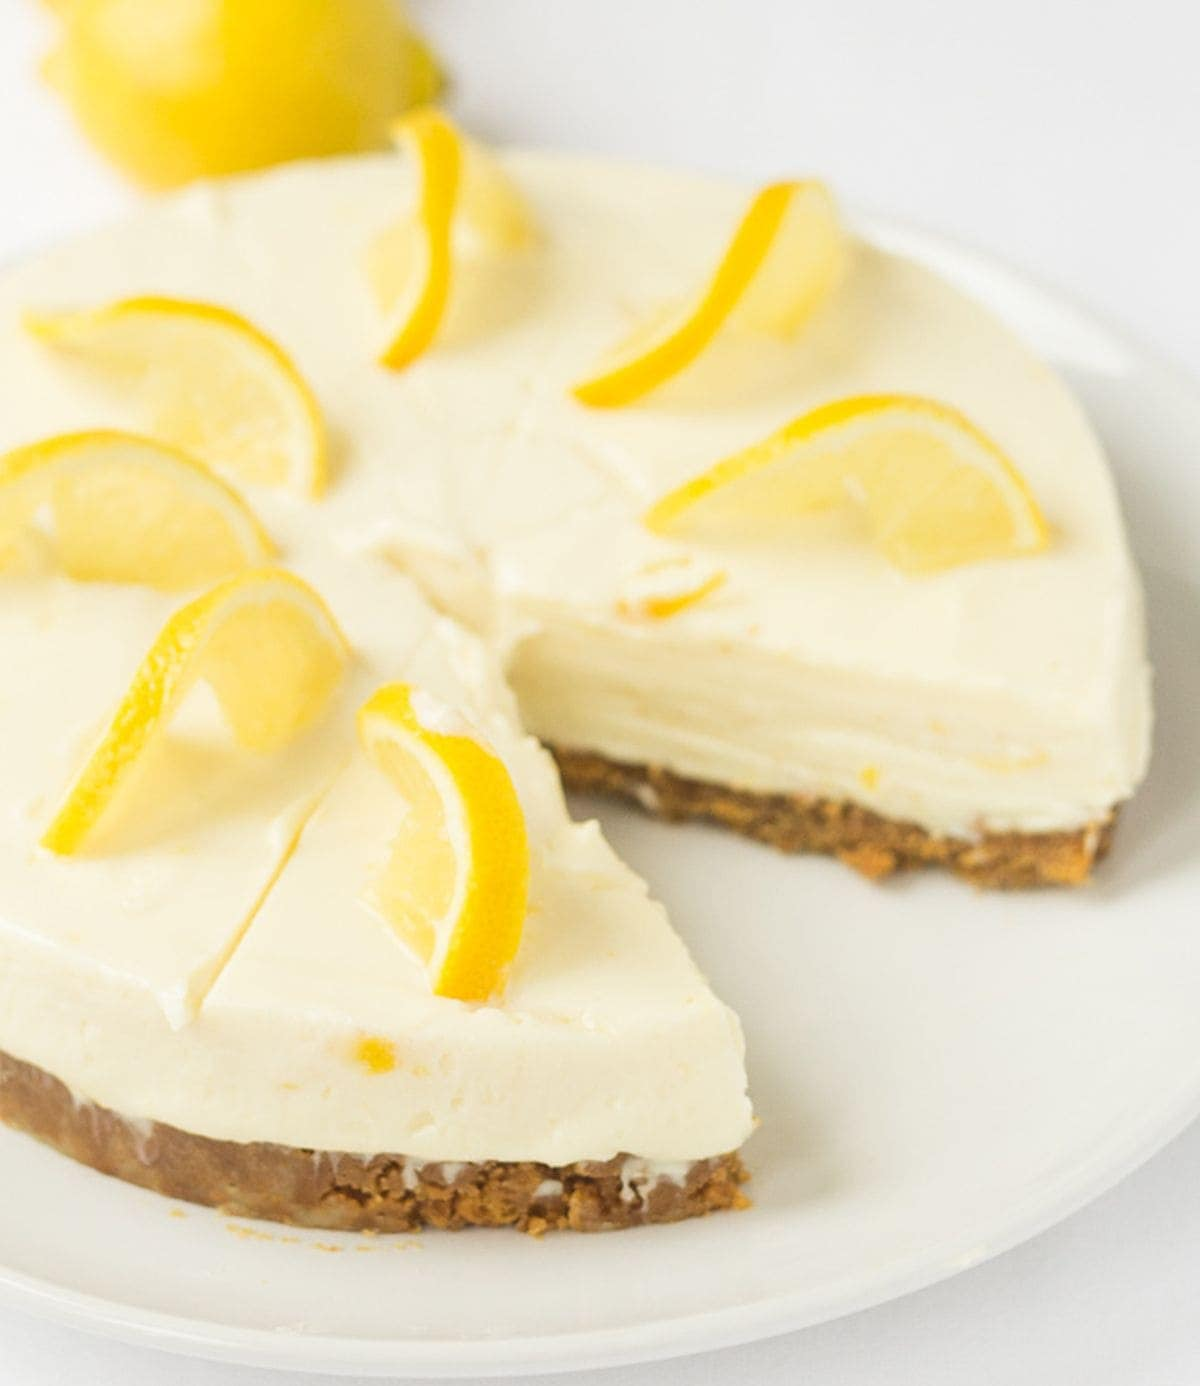 Lemon crunch cheesecake on a white plate with a slice removed.